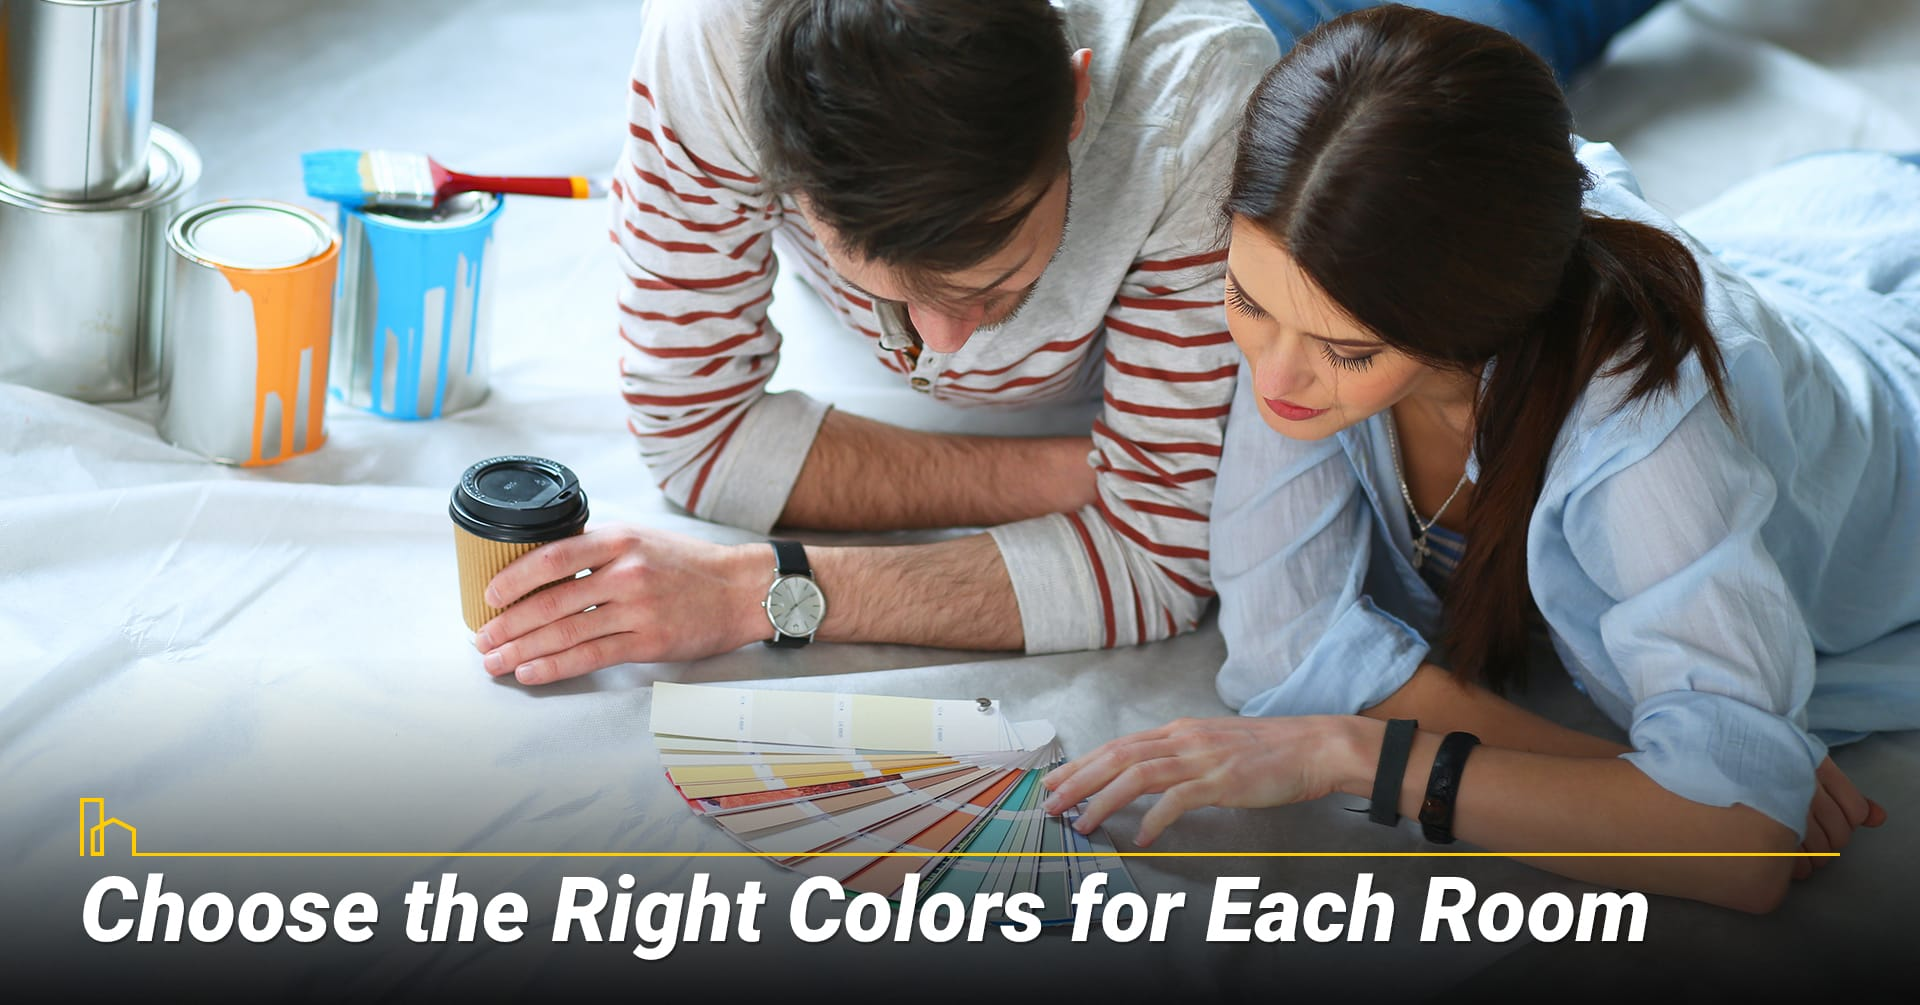 Choose the Right Colors for Each Room, customize color for each room